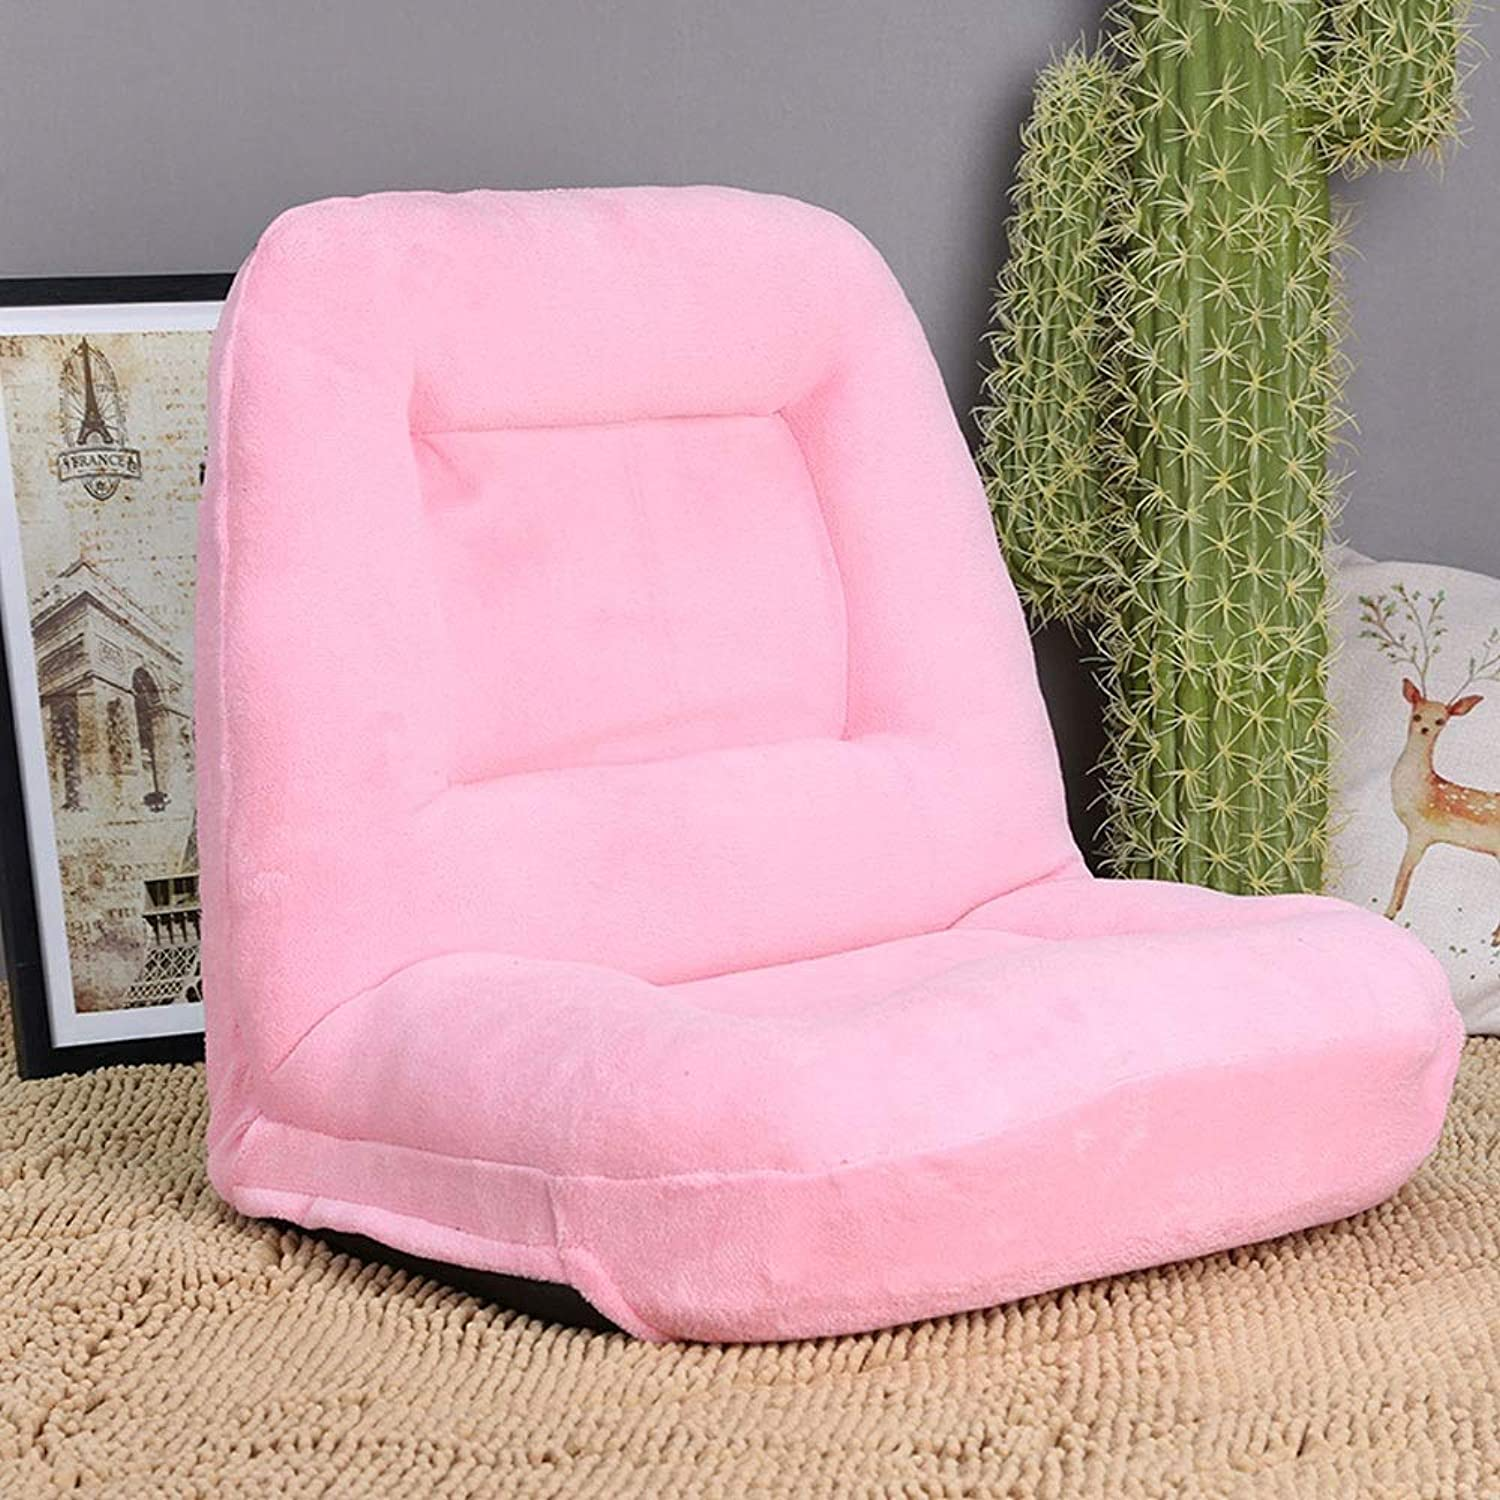 Lazy Couch Single Tatami Floor Chair Balcony Bay Window Lunch Break Dormitory Dorm Foldable Bed net red Back (color   Pink)